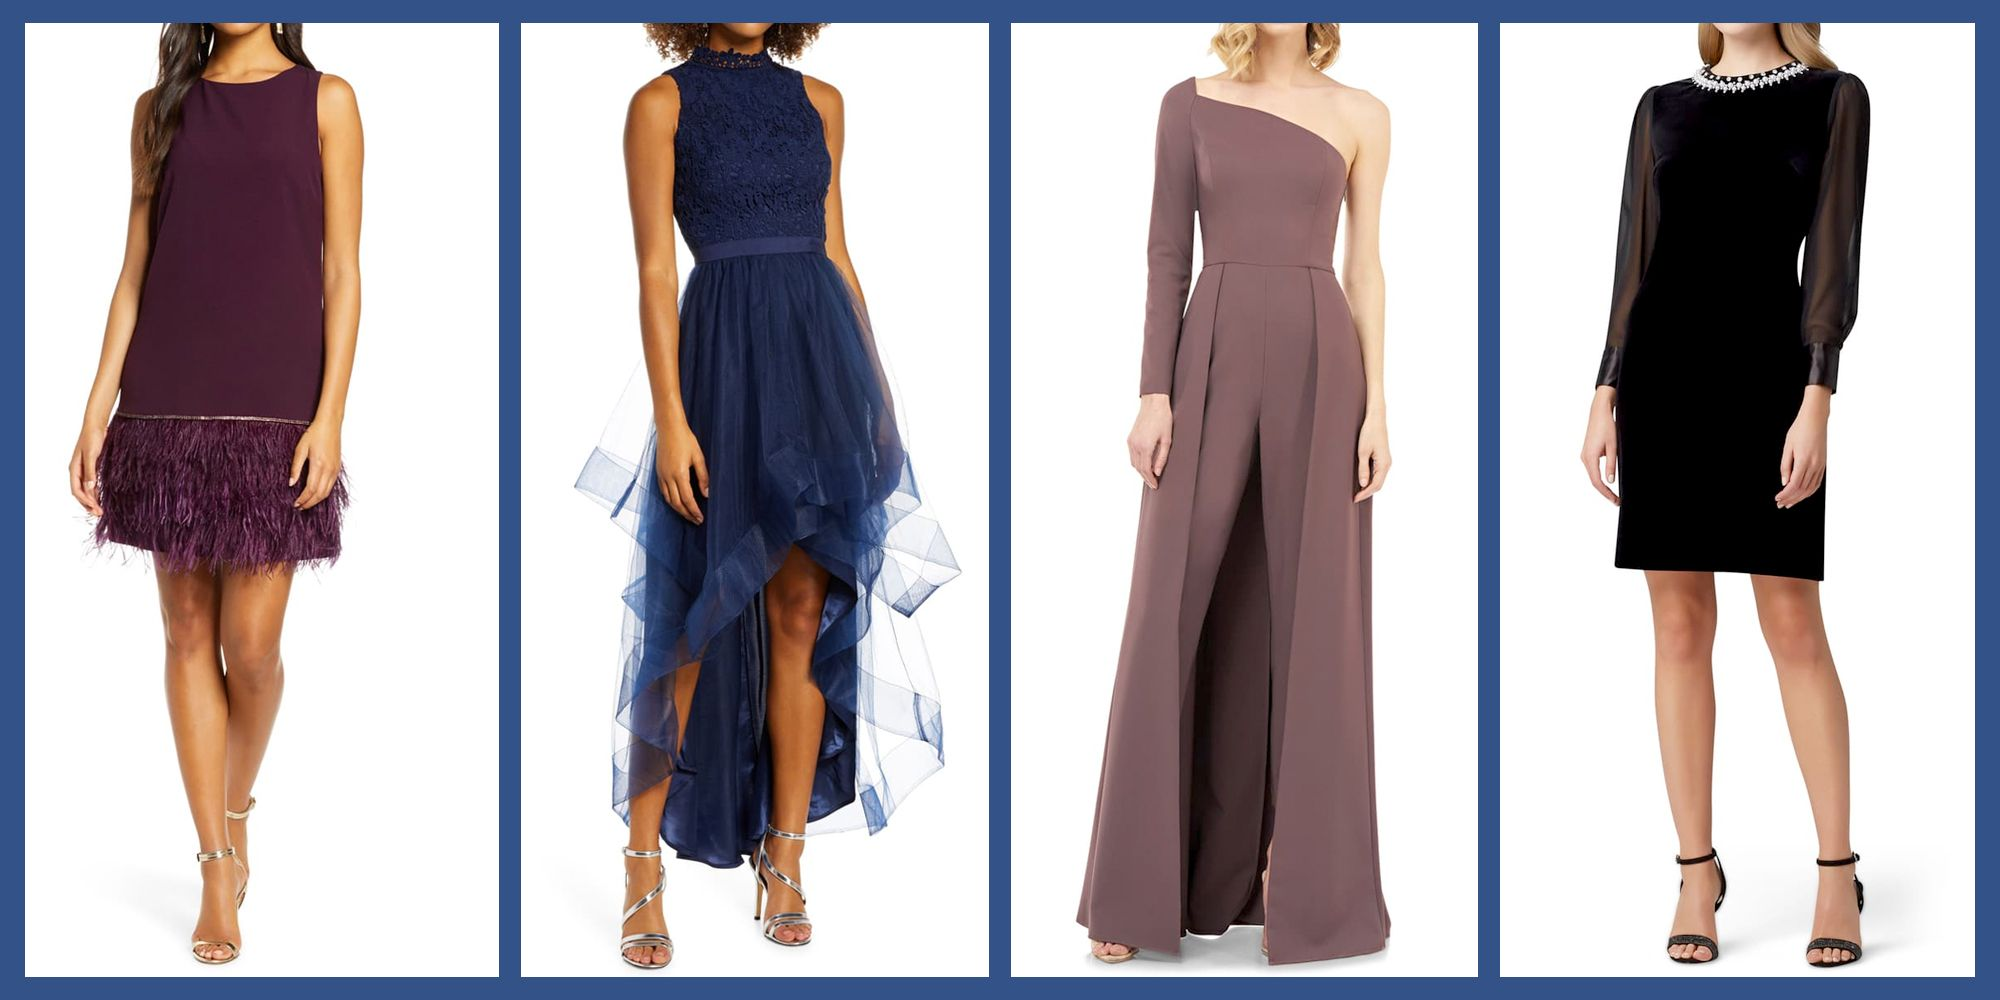 Dresses You Can Actually Wear to a Winter Wedding